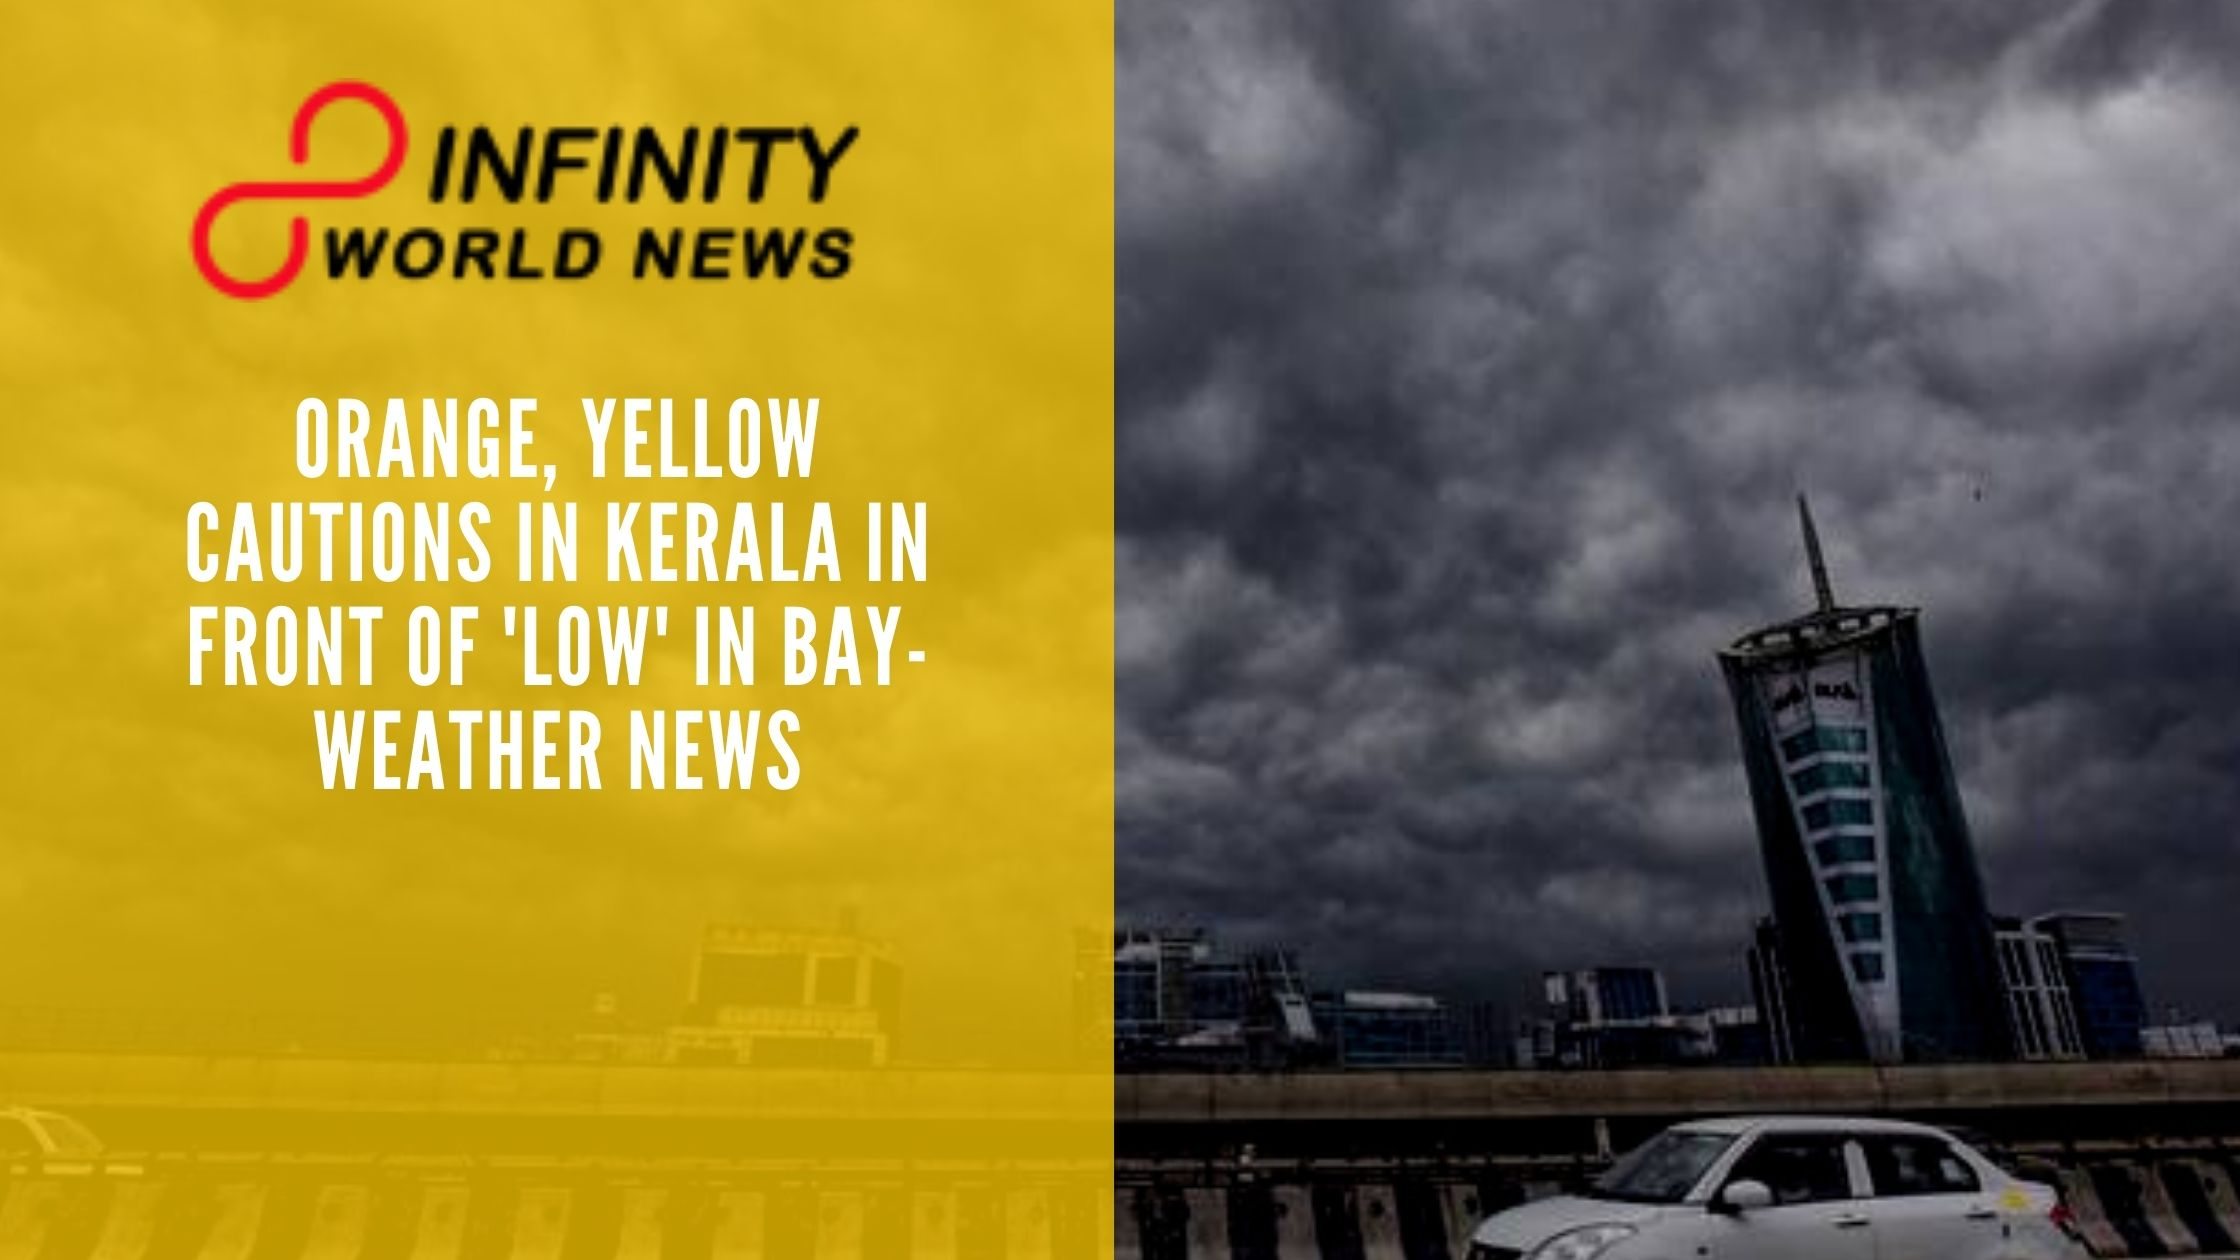 Orange, Yellow cautions in Kerala in front of 'low' in Bay-Weather News